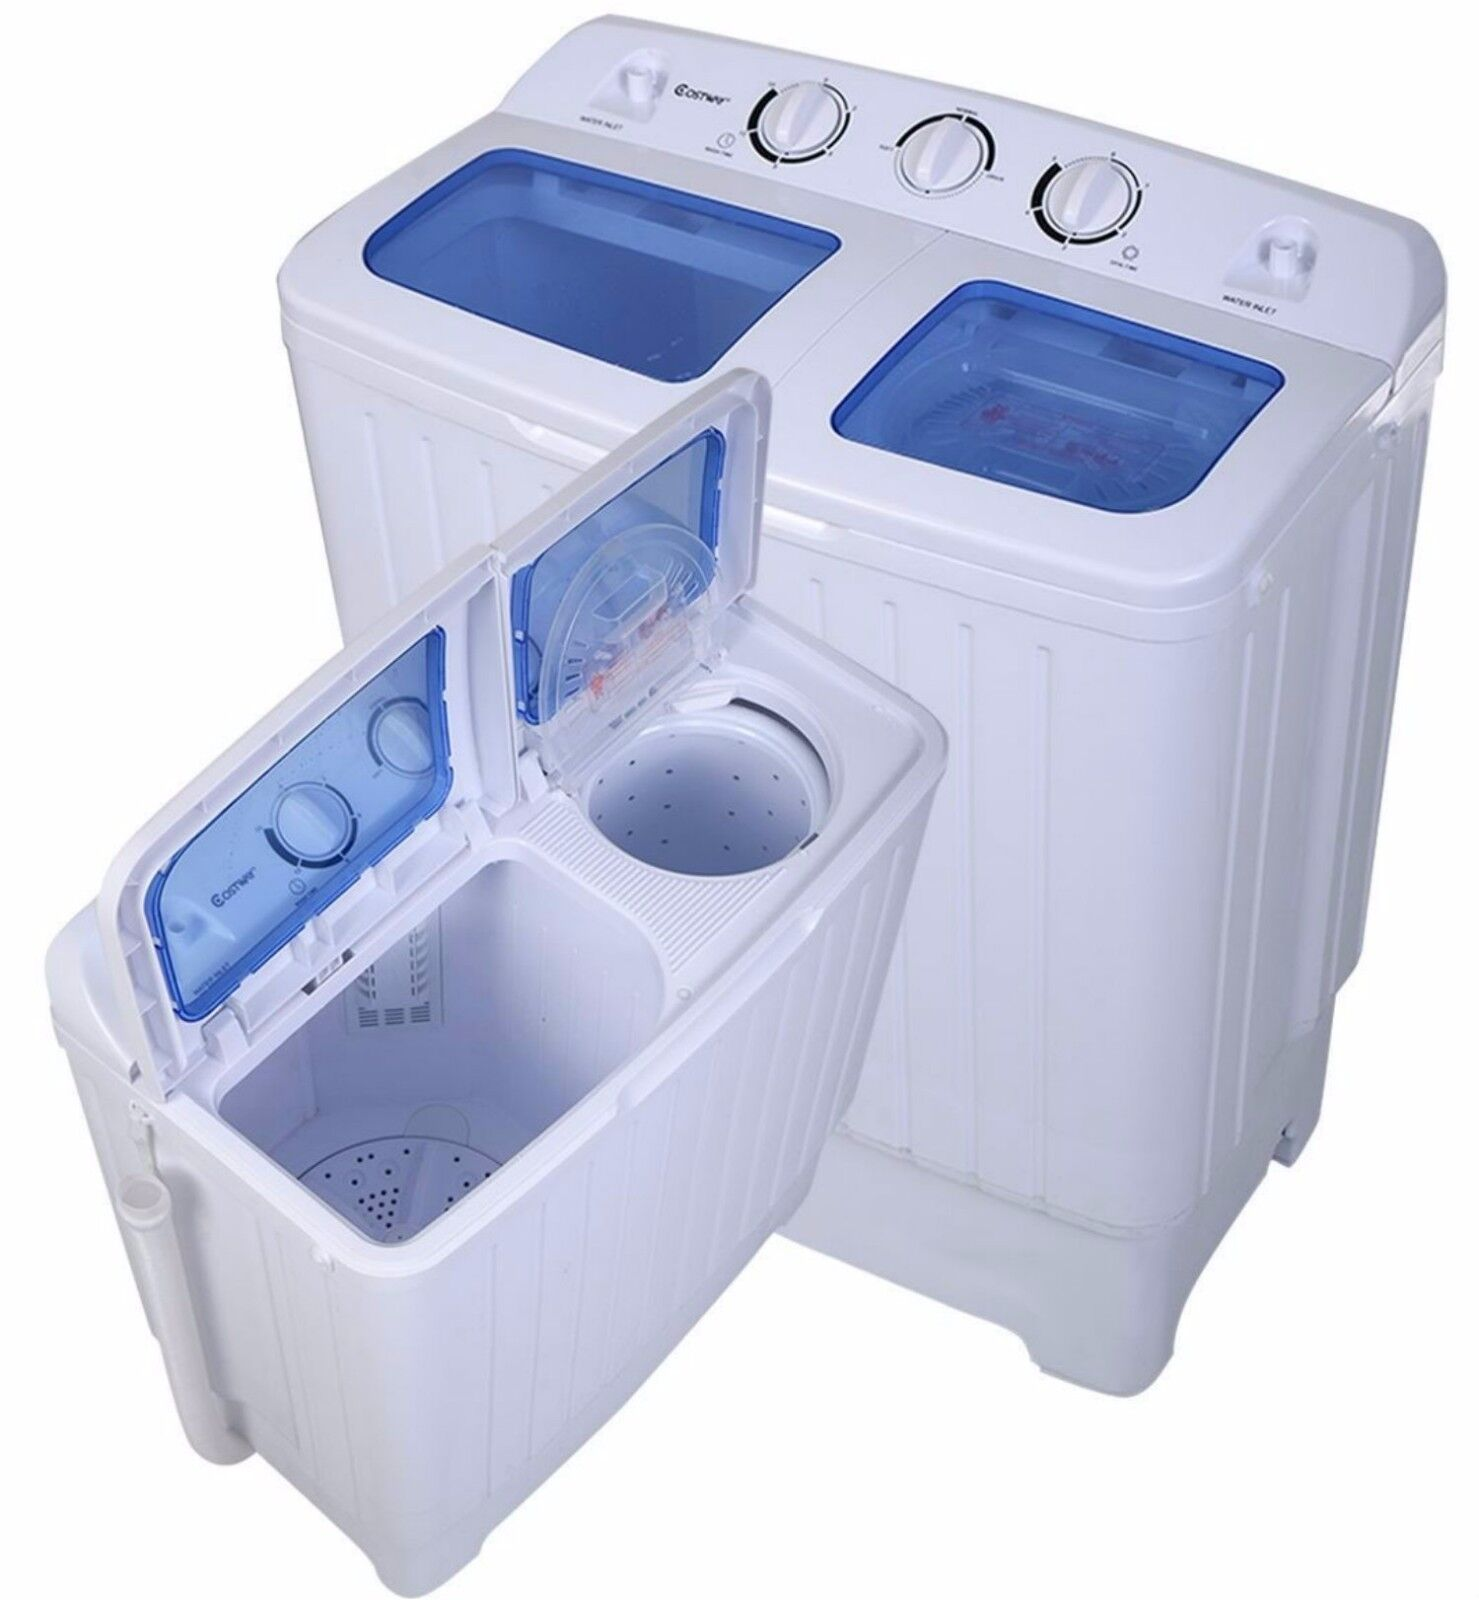 Washer And Dryer Combo Portable Washing Machine 11lbs